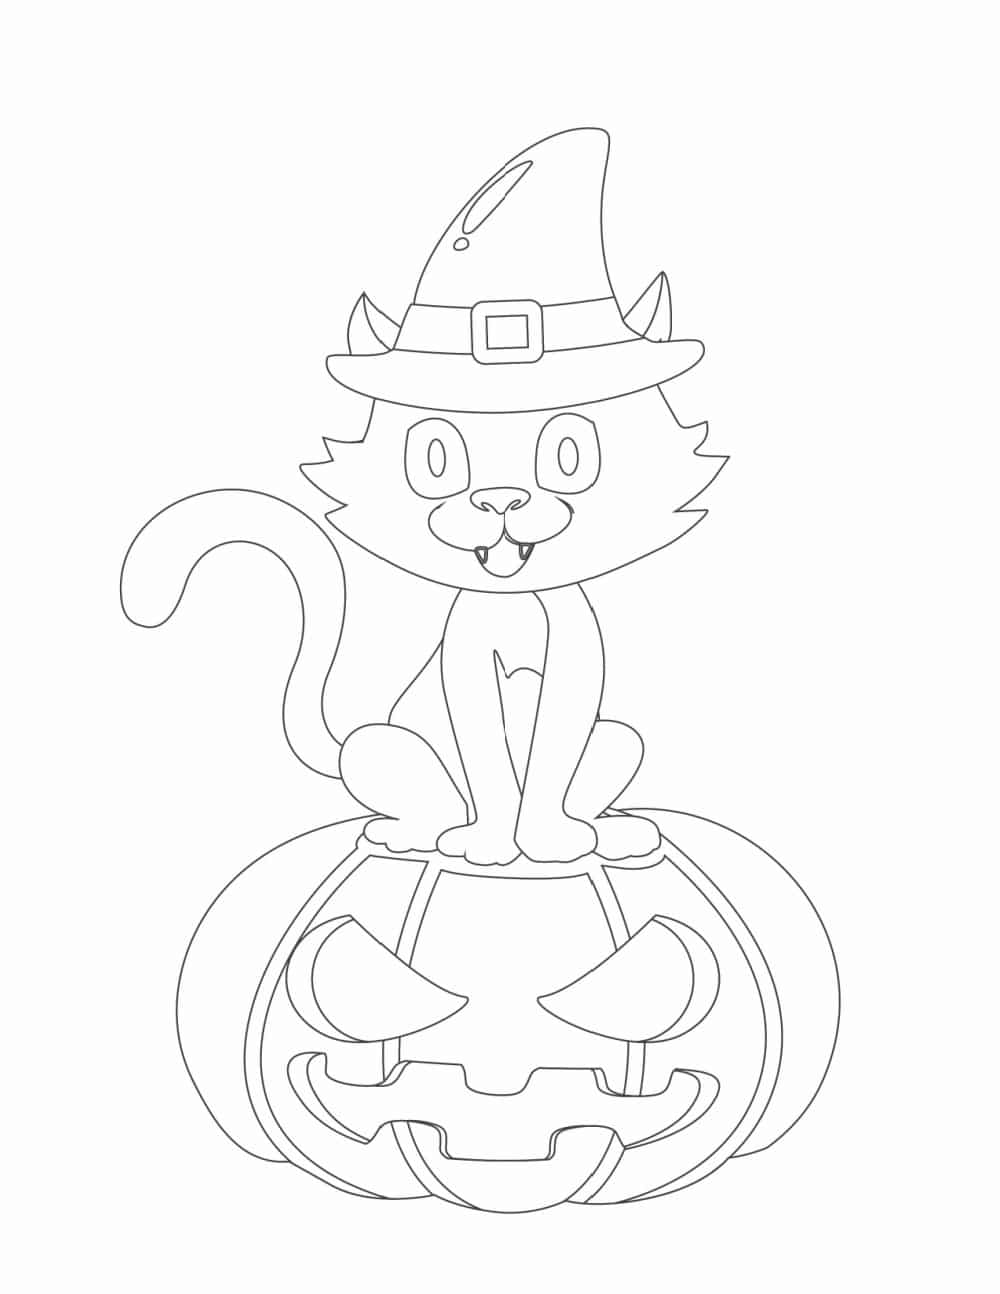 Who needs the cat in the hat when you can have the cat in the witch's hat as shown in these free Halloween coloring pages for kids?